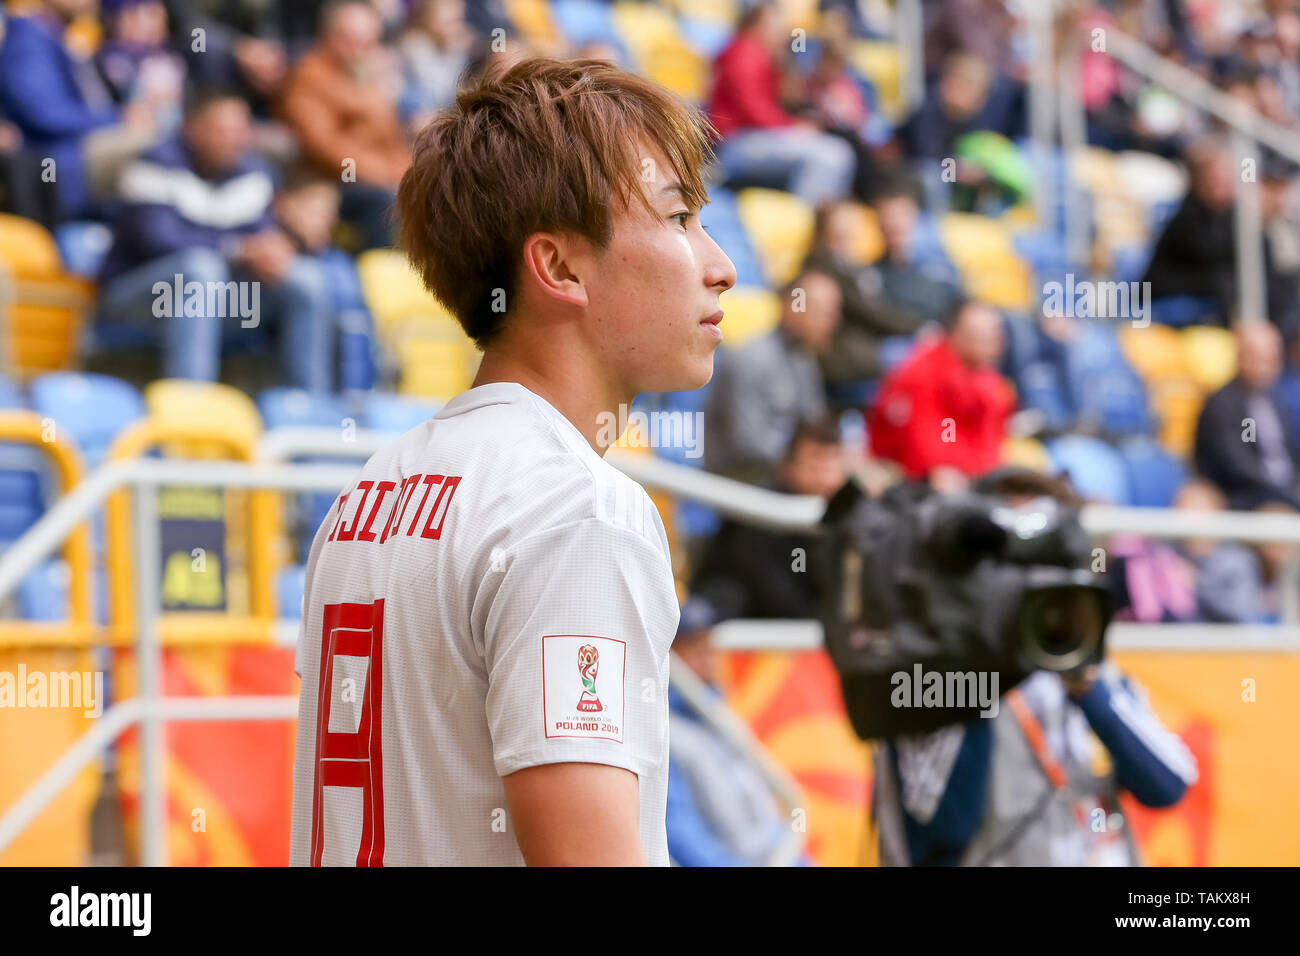 Gdynia Stadium, Gdynia, Poland - 26th May, 2019: Kanya Fujimoto from Japan seen in action during FIFA U-20 World Cup match between Mexico and Japan (GROUP B) in Gdynia. (Final score; Mexico 0:3 Japan) - Stock Image